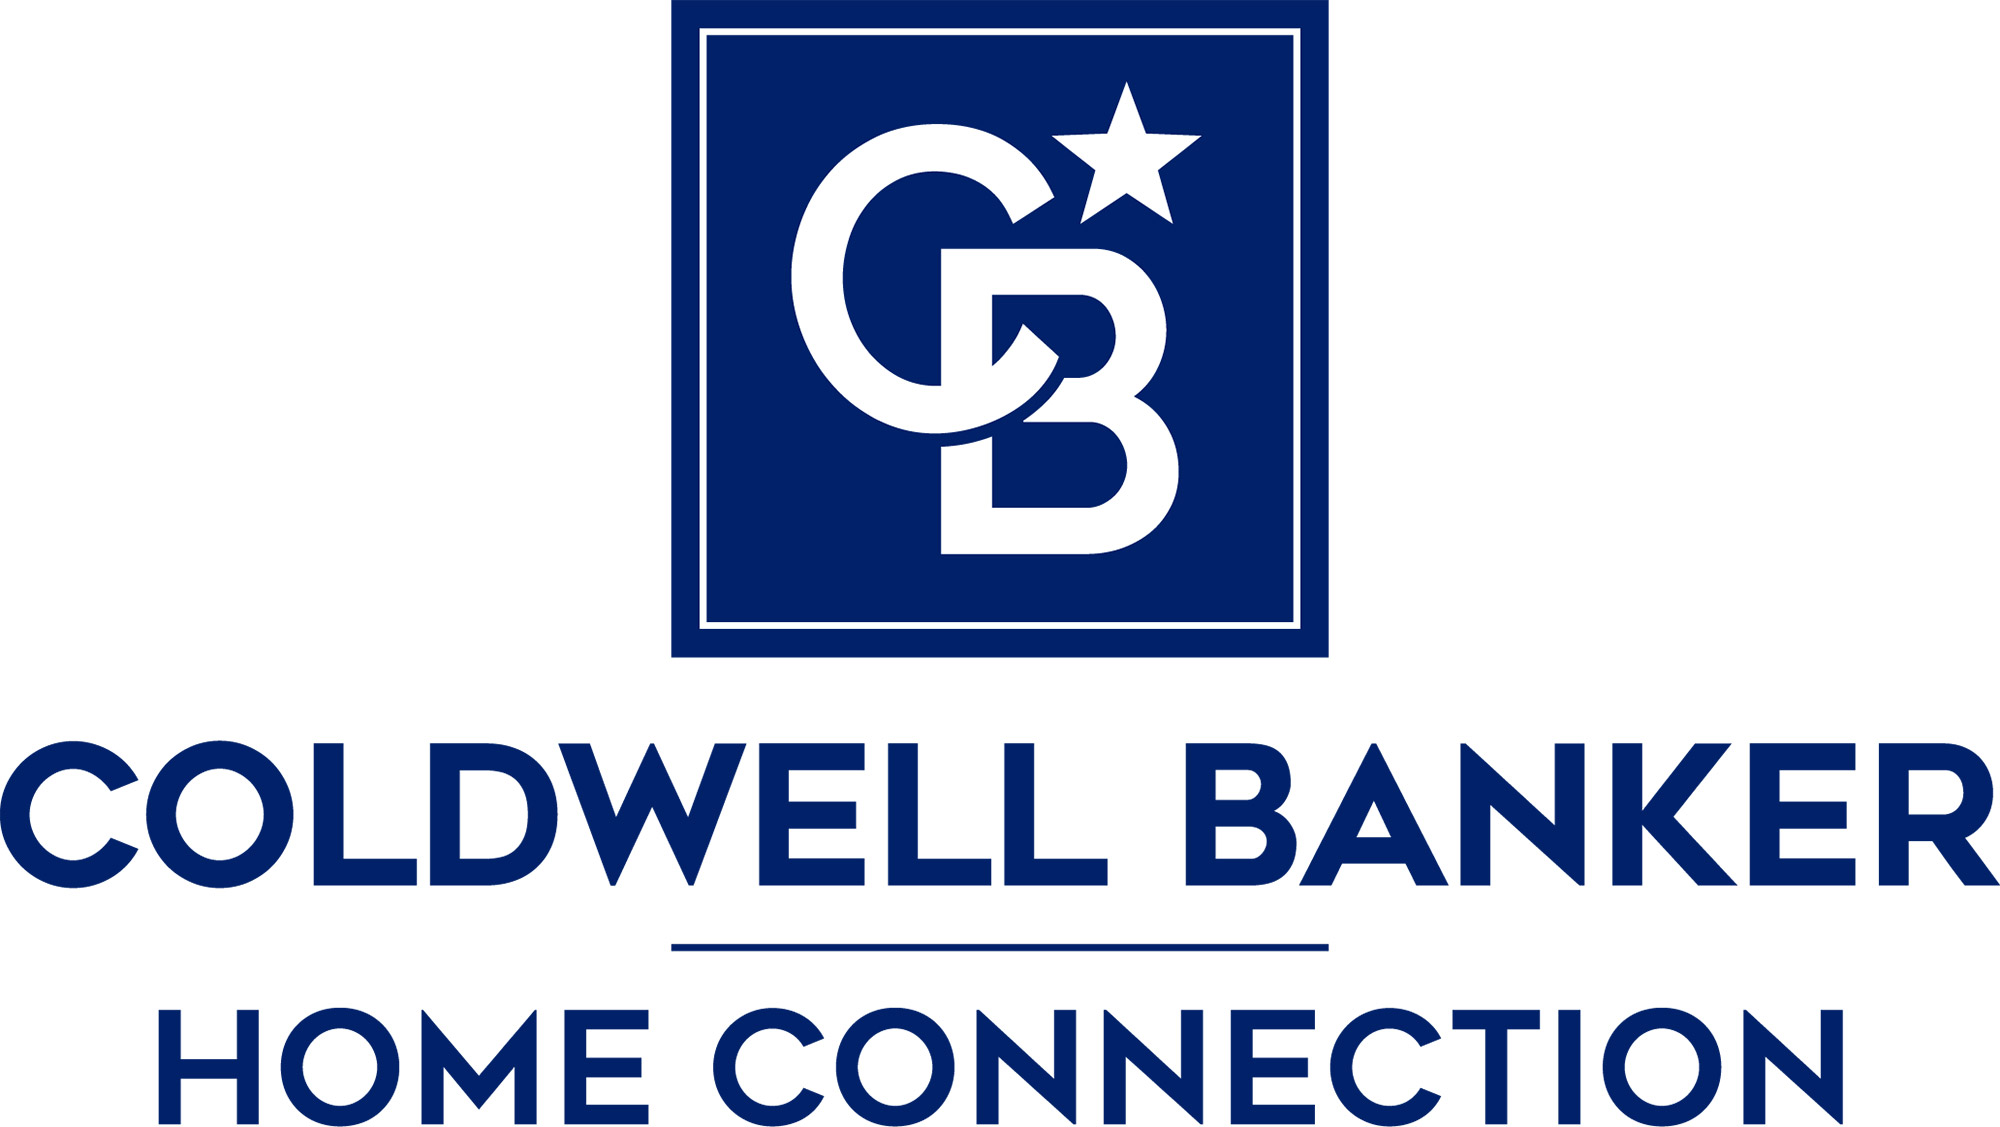 Chad Hacker - Coldwell Banker Home Connection